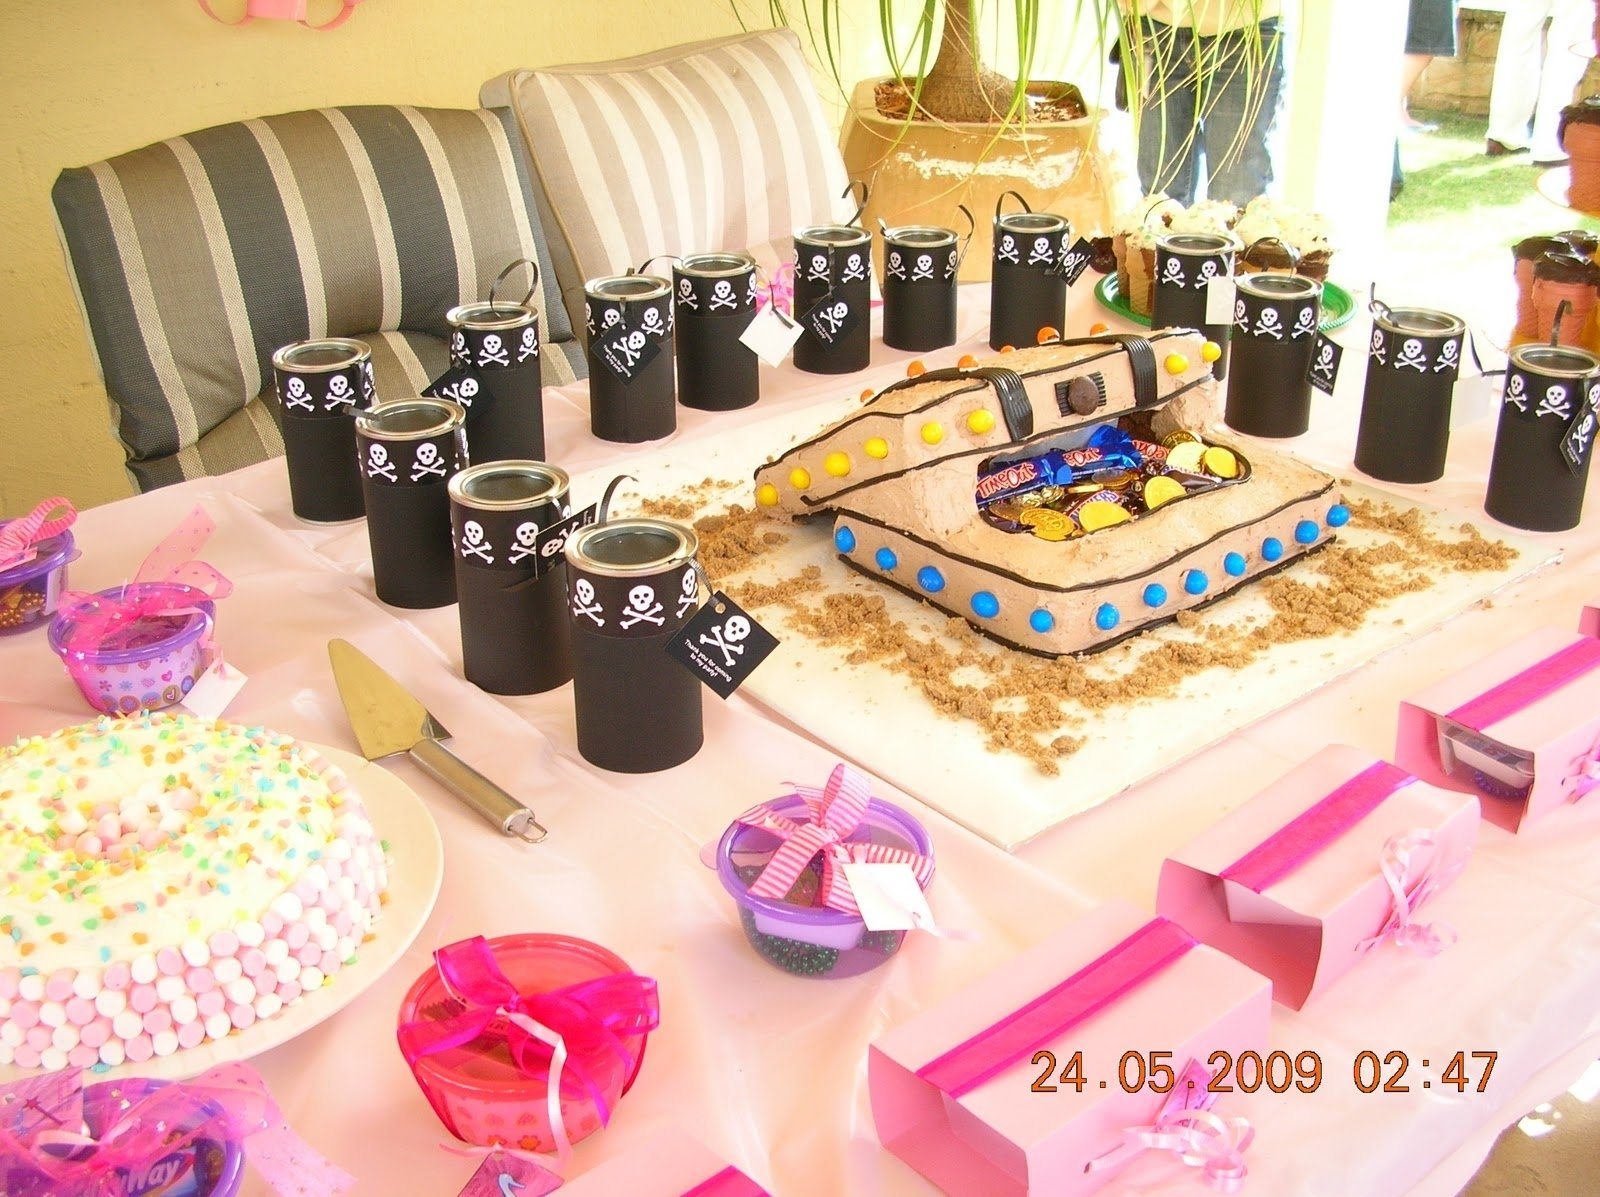 10 Awesome Princess And Pirate Party Ideas cherry on top parties pirate princess party 1 2020